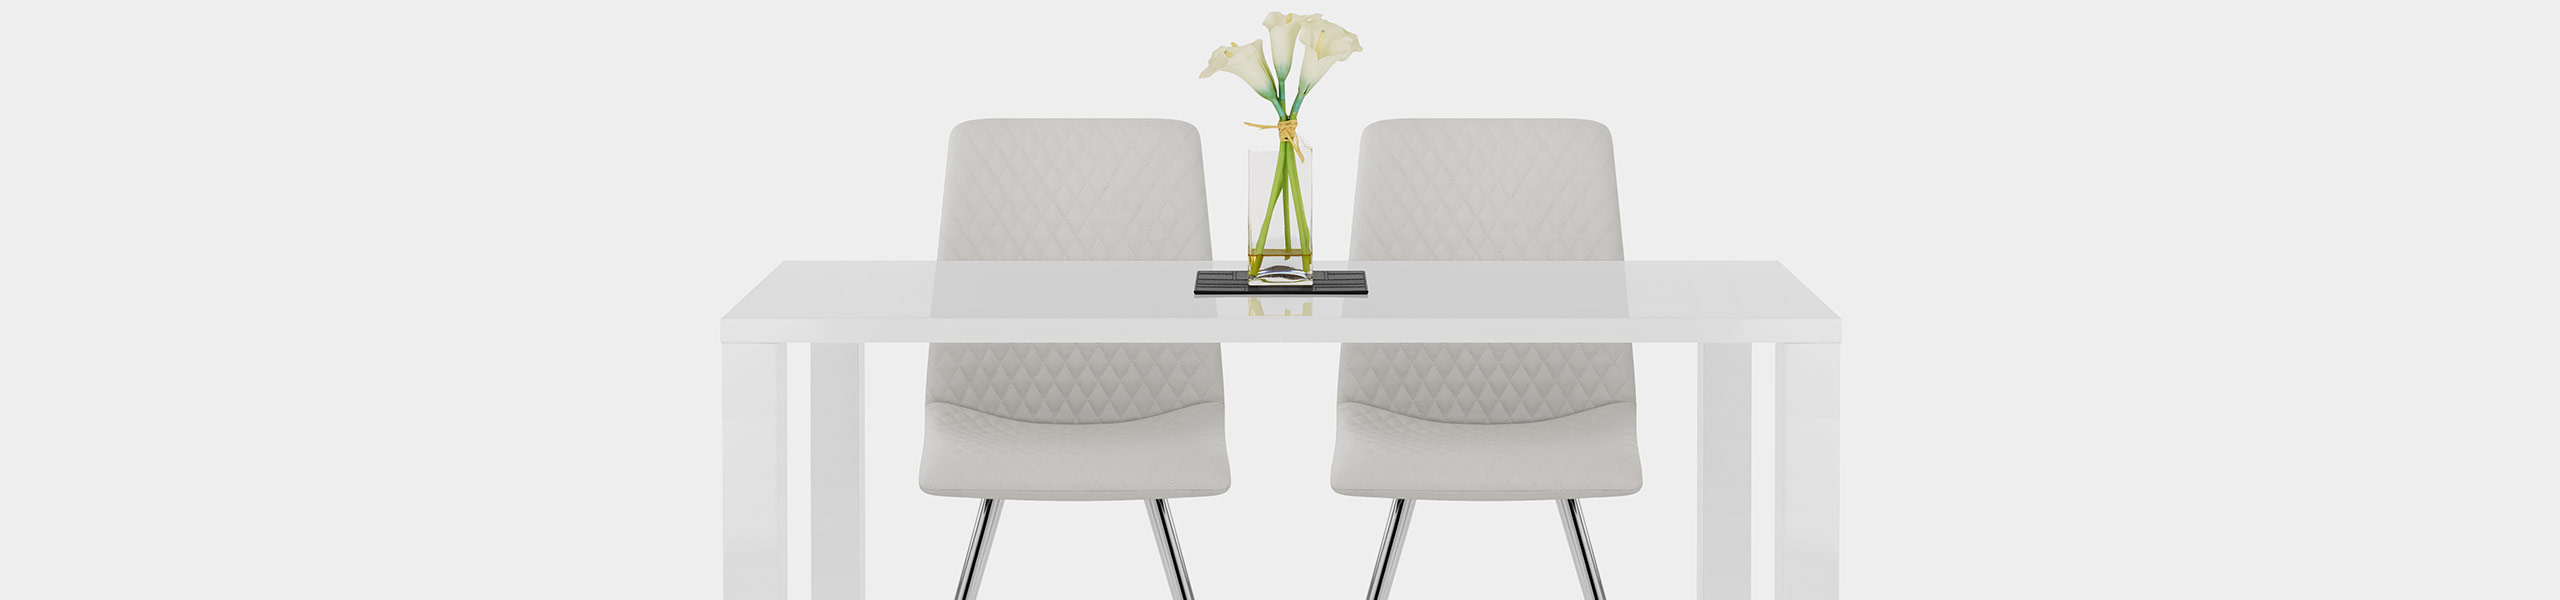 Trevi Dining Chair Light Grey Video Banner